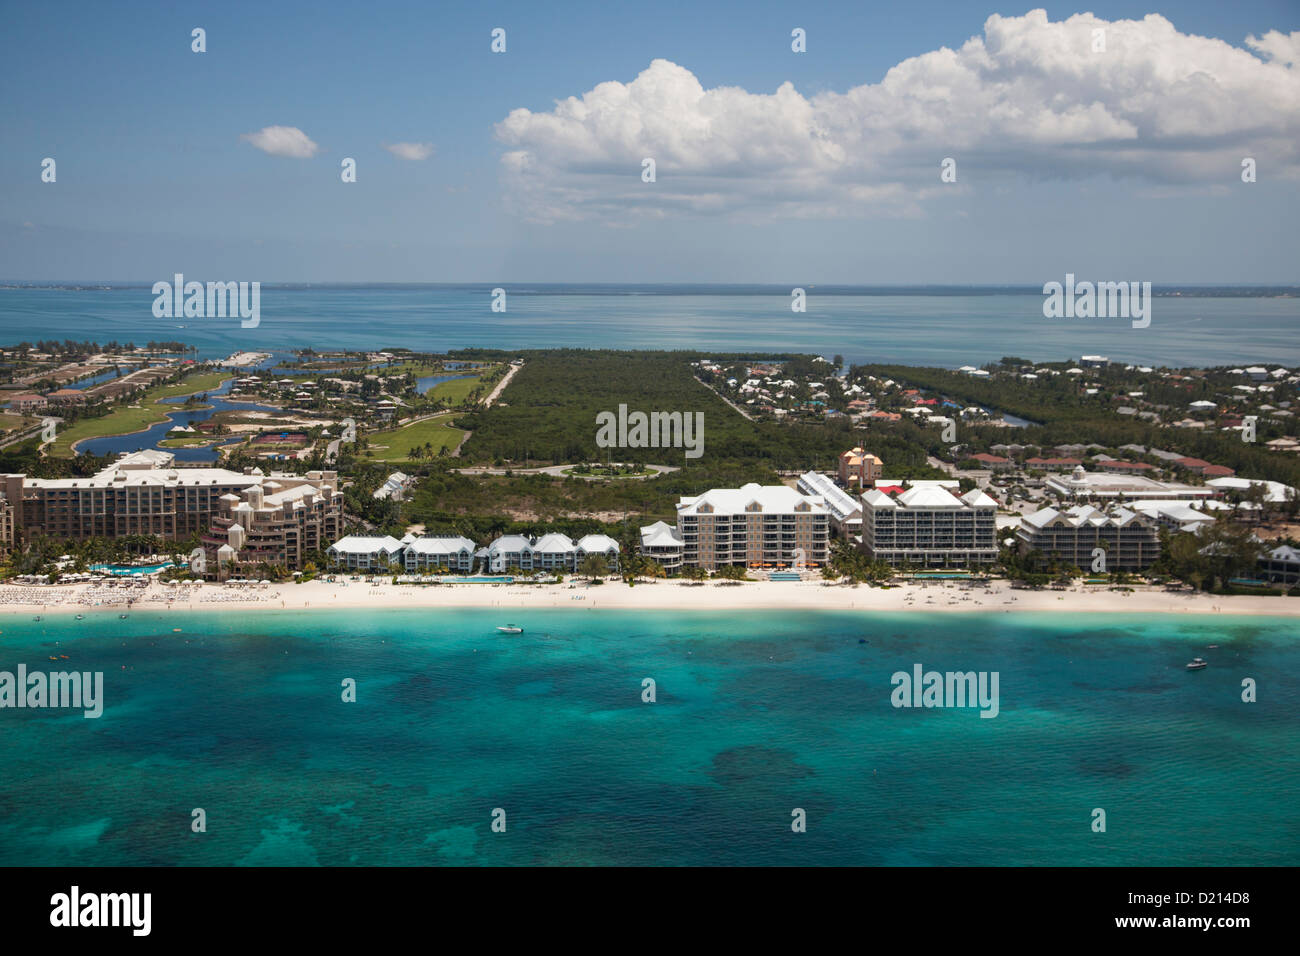 Aerial of hotels along beach, George Town, Grand Cayman, Cayman Islands, Caribbean Stock Photo